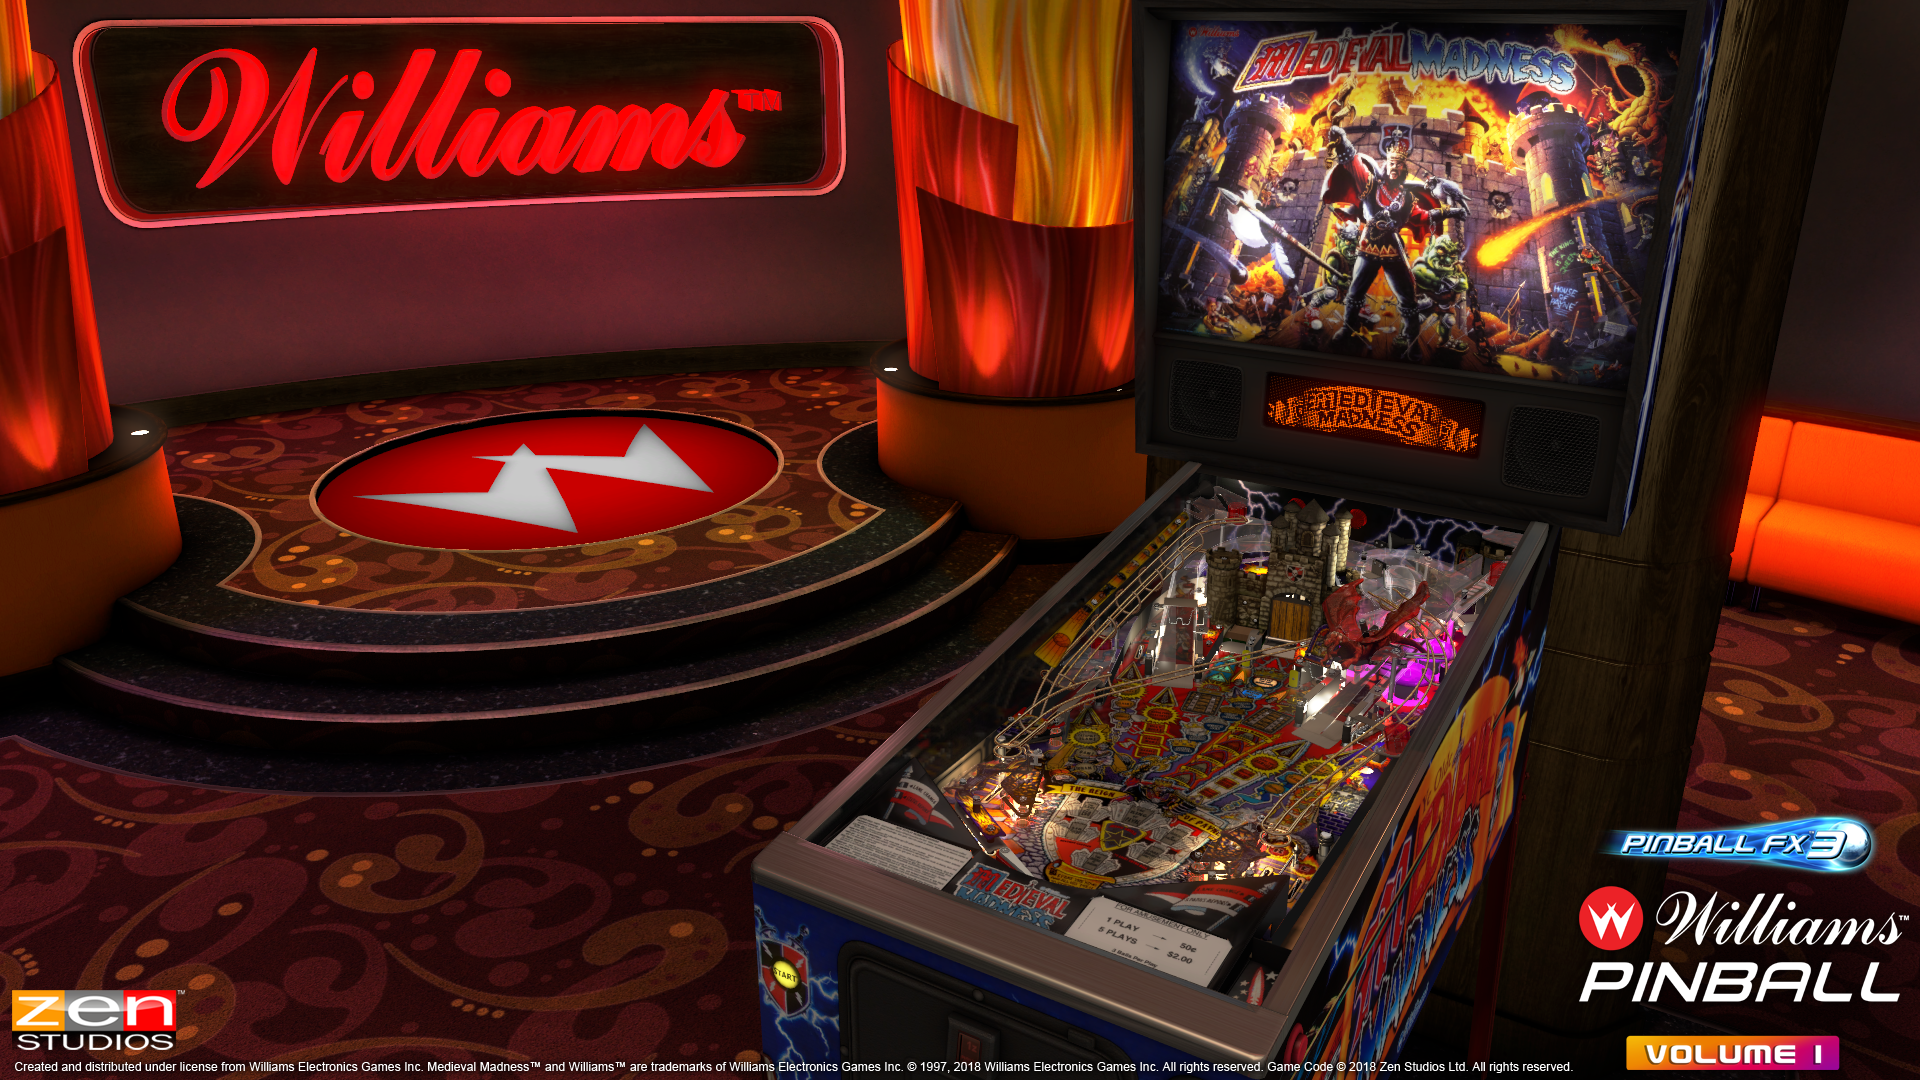 Williams Bally Pinball License Acquired by Zen Studios - EXCLUSIVE